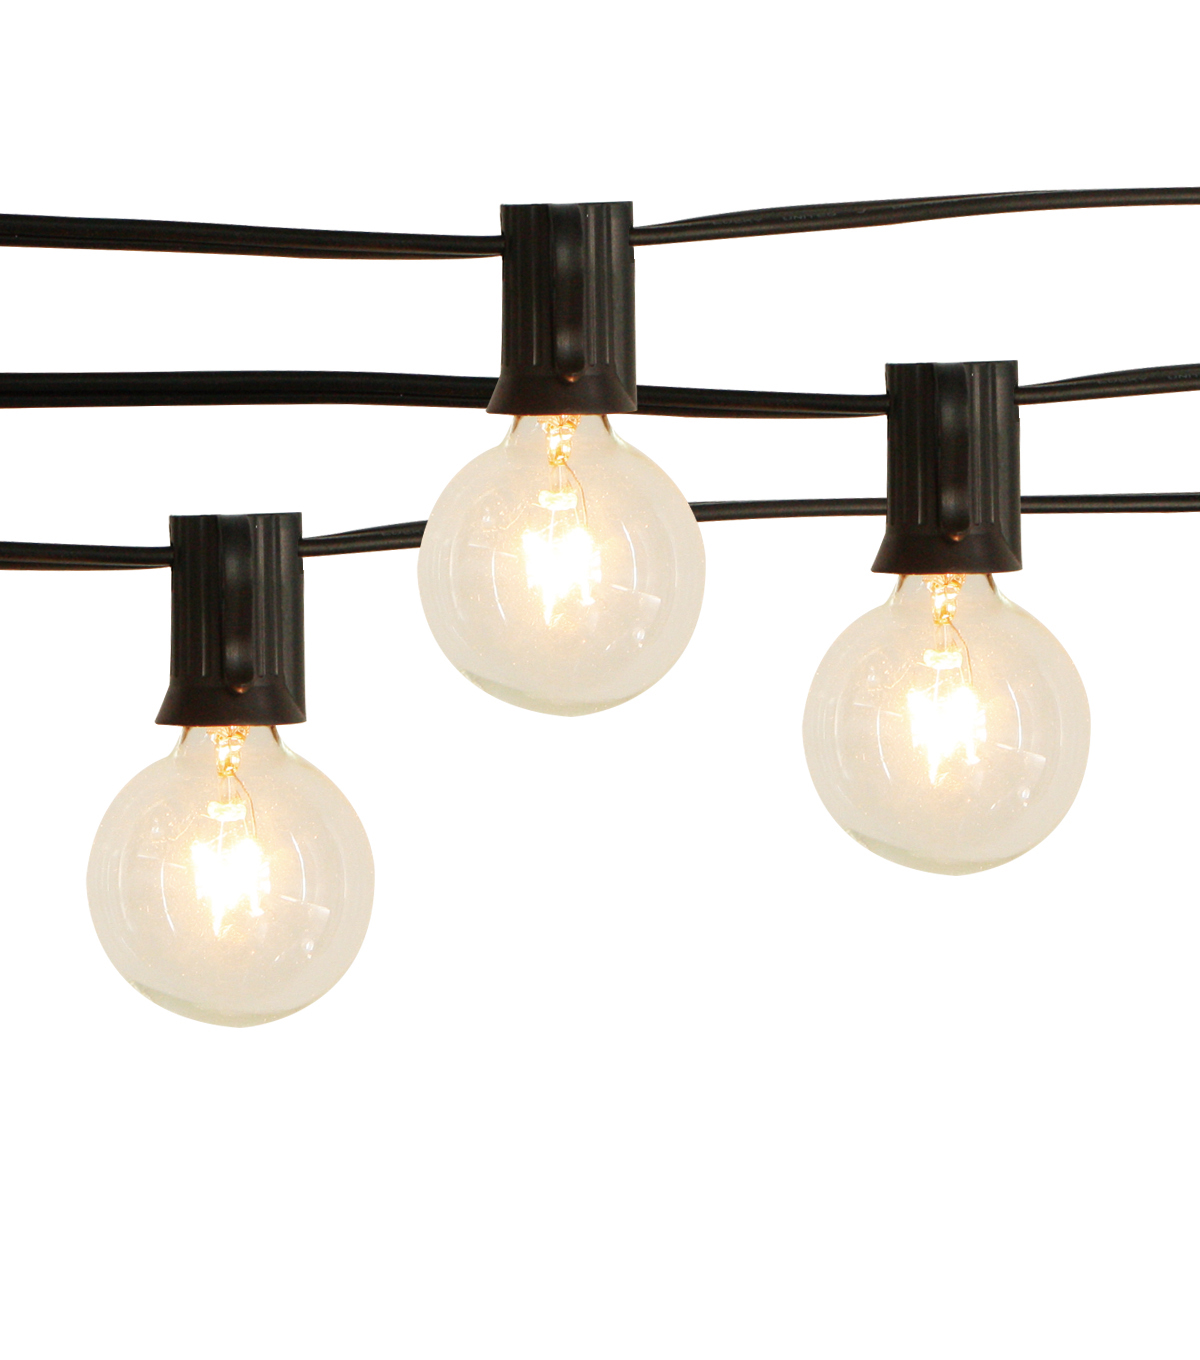 Hudson 43 Candle & Light Collection G40 Clear Bulb String Lights 20Ct